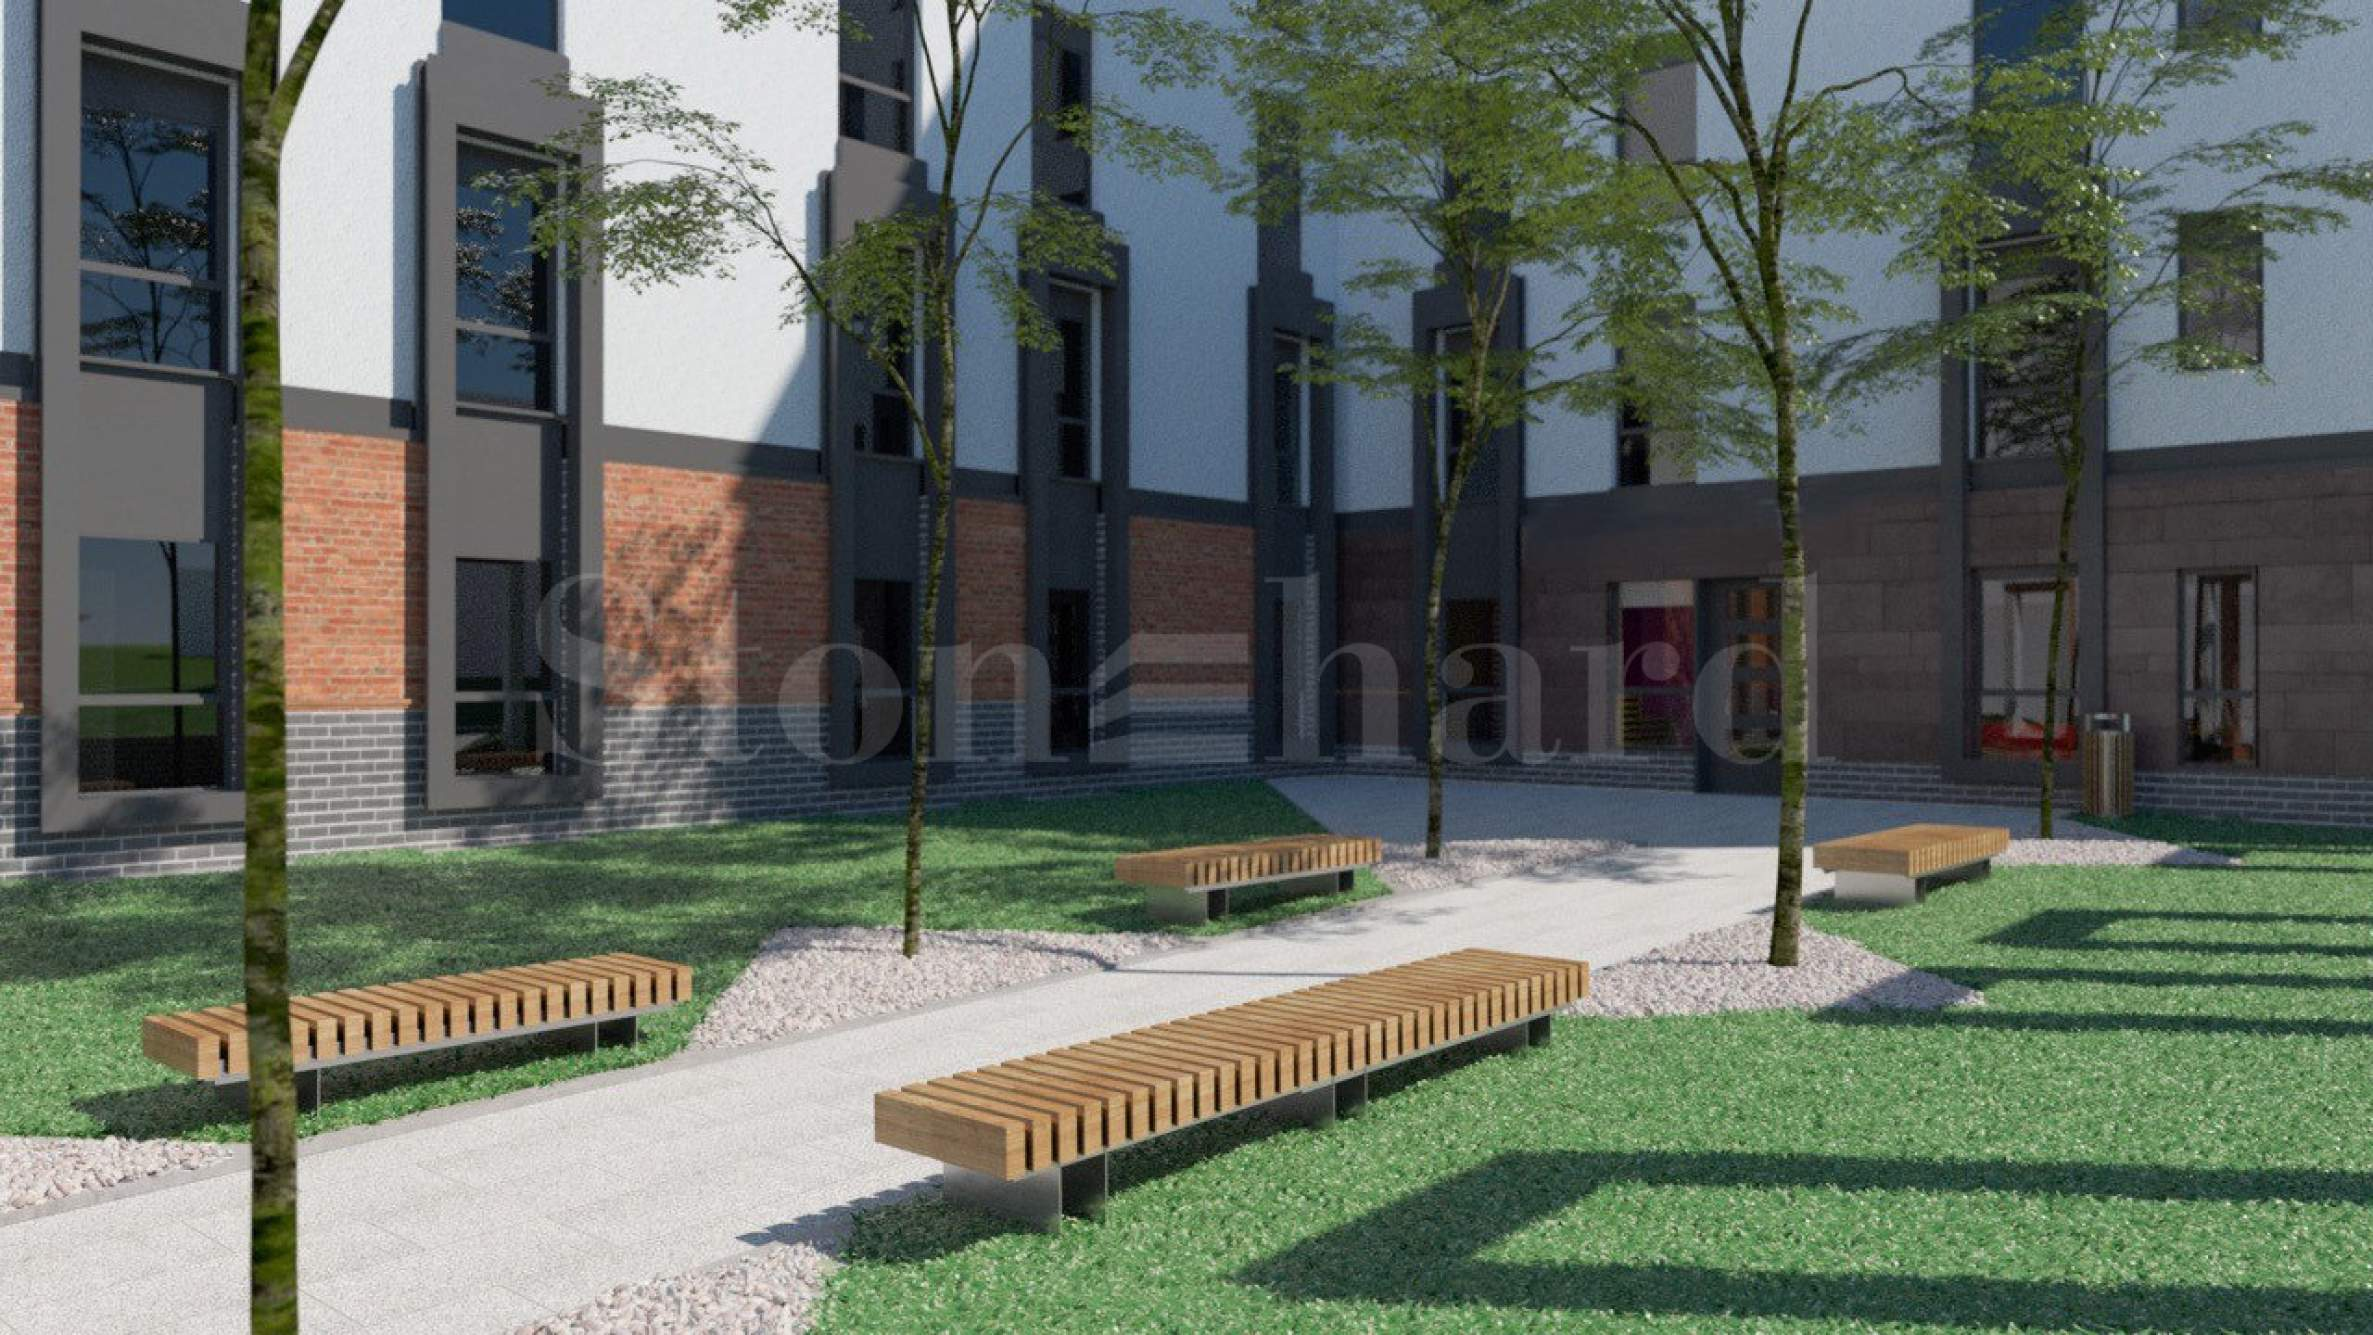 Purpose built student accommodation with high net yield2 - Stonehard